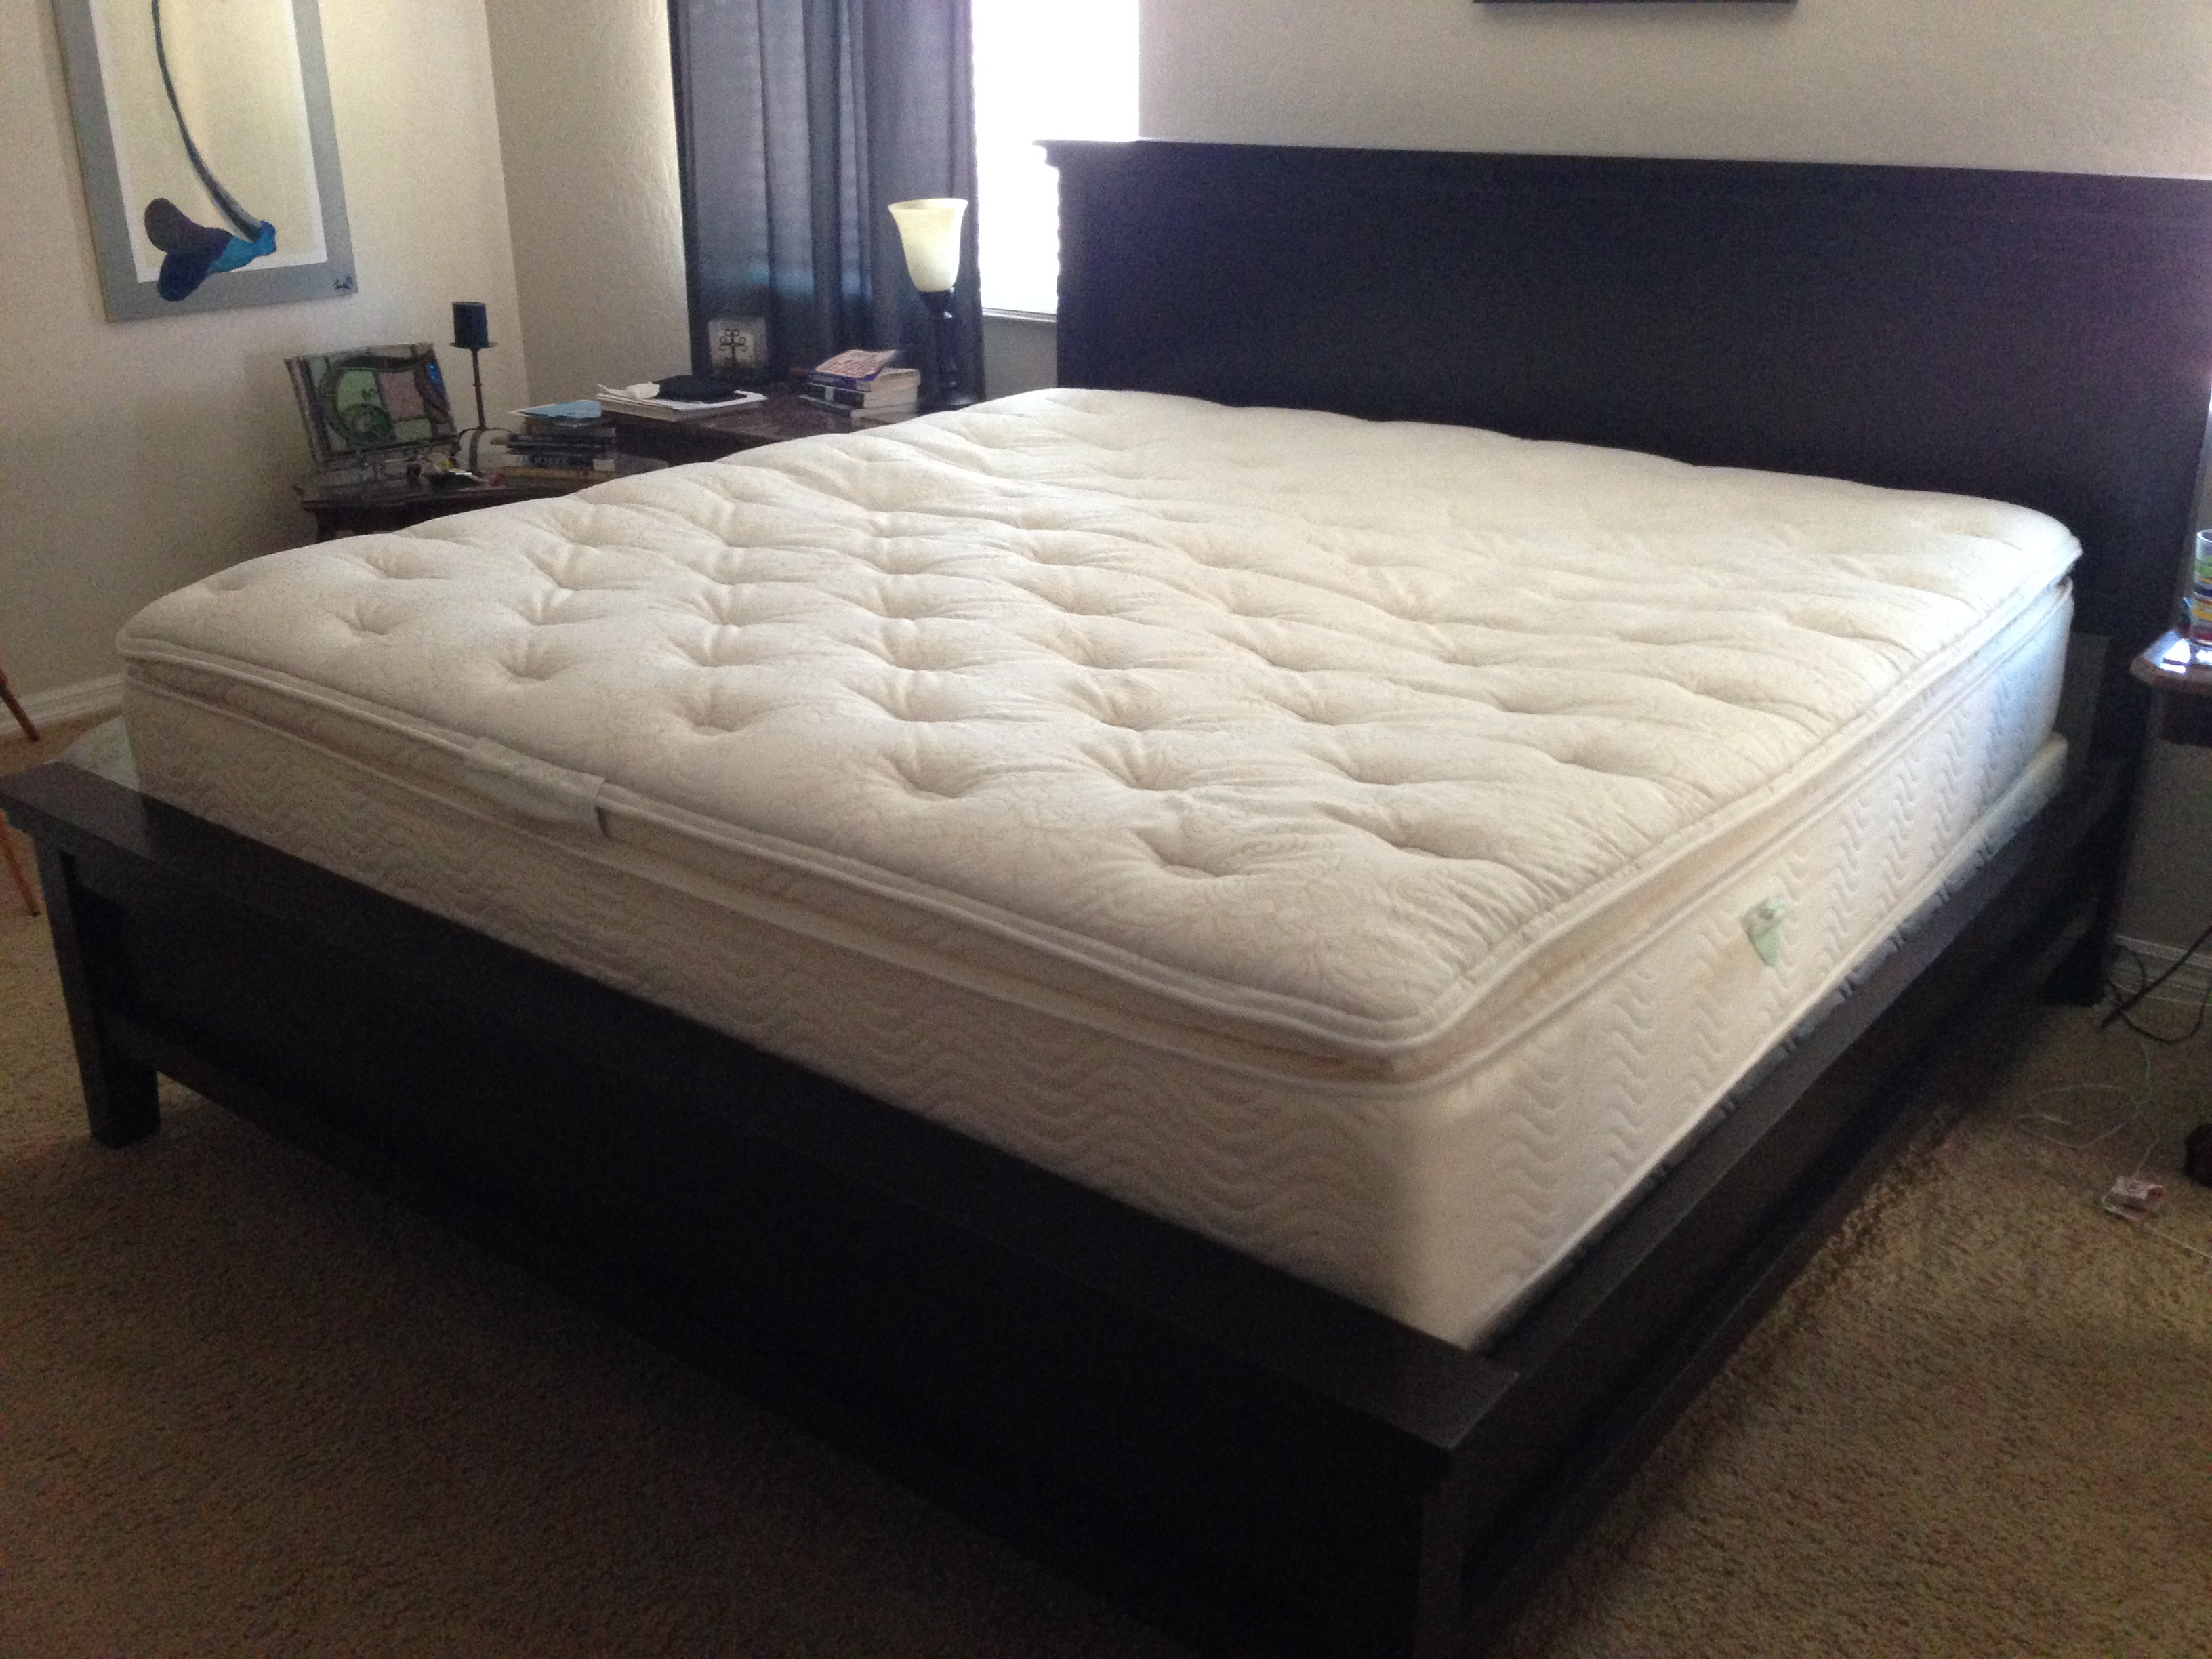 costco king size mattress. Simmons Beauty Rest Spring Mattress Costco King Size O